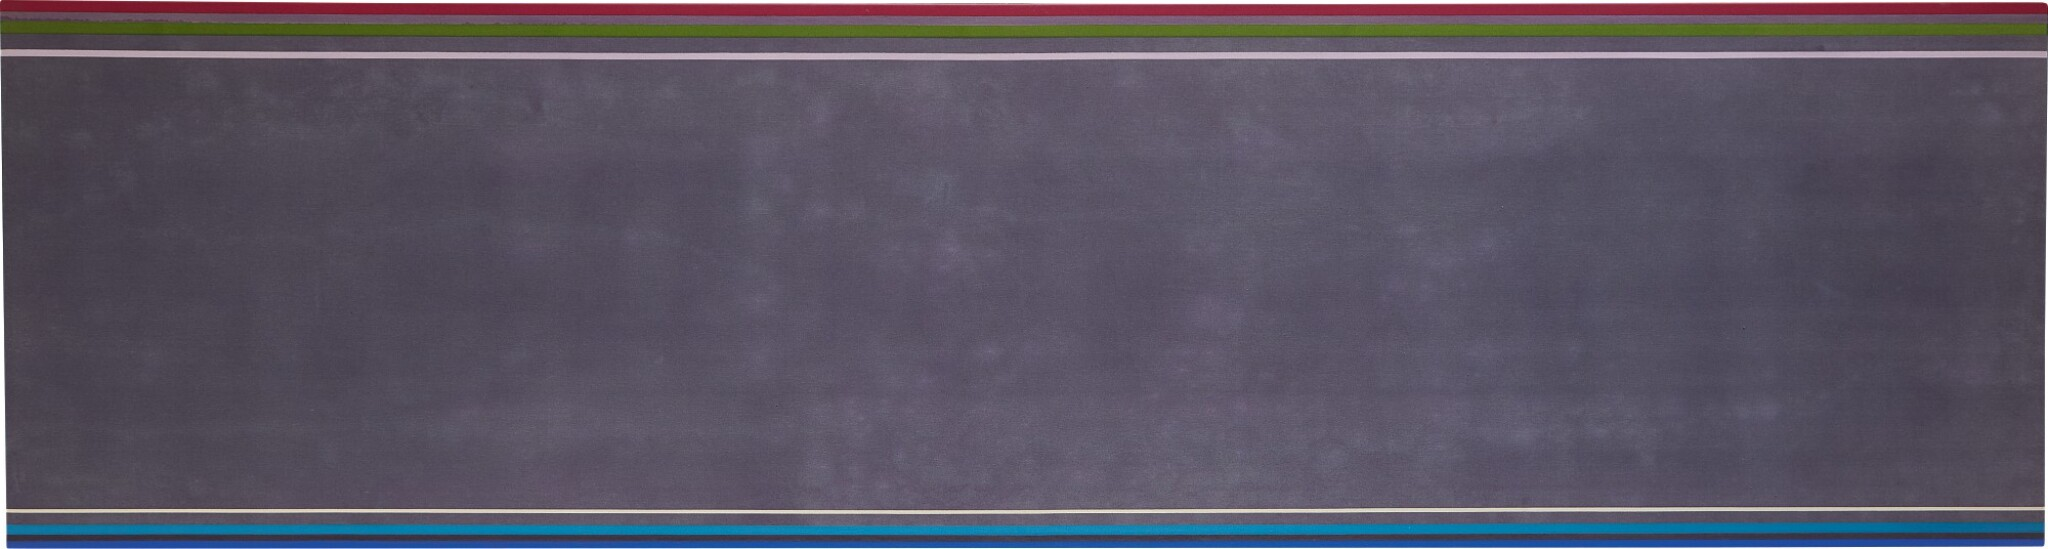 View 1 of Lot 203. KENNETH NOLAND | MEXICAN CAMINO.